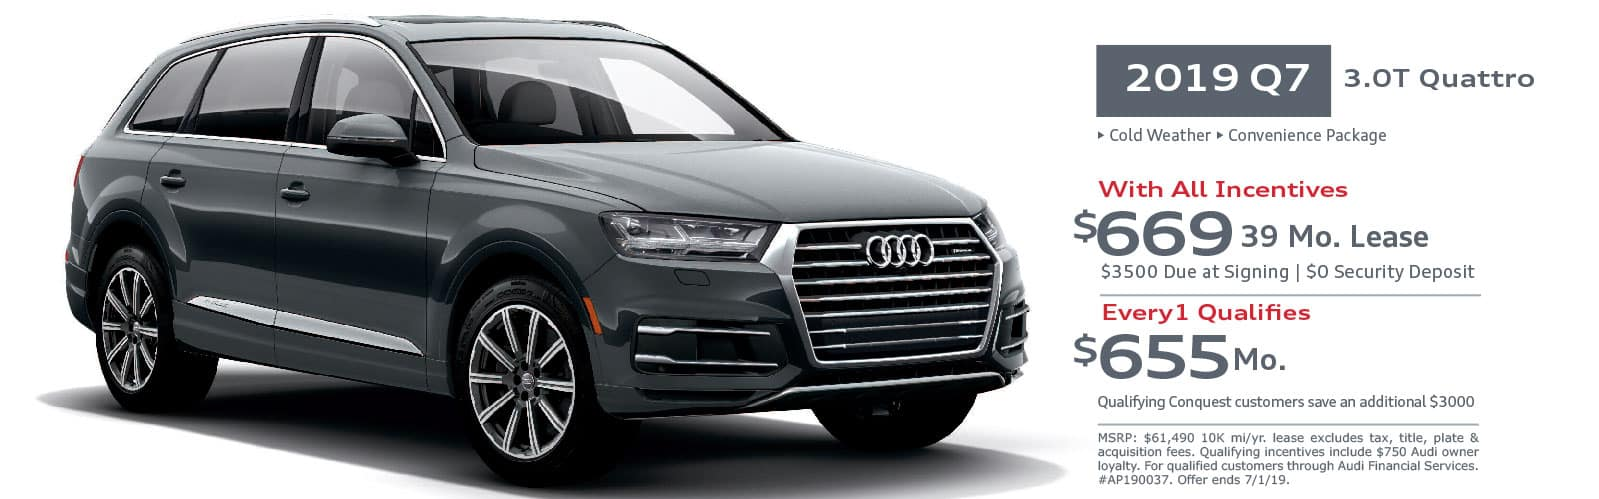 Audi Lease Deals Washington | New Car Lease Specials Pittsburgh